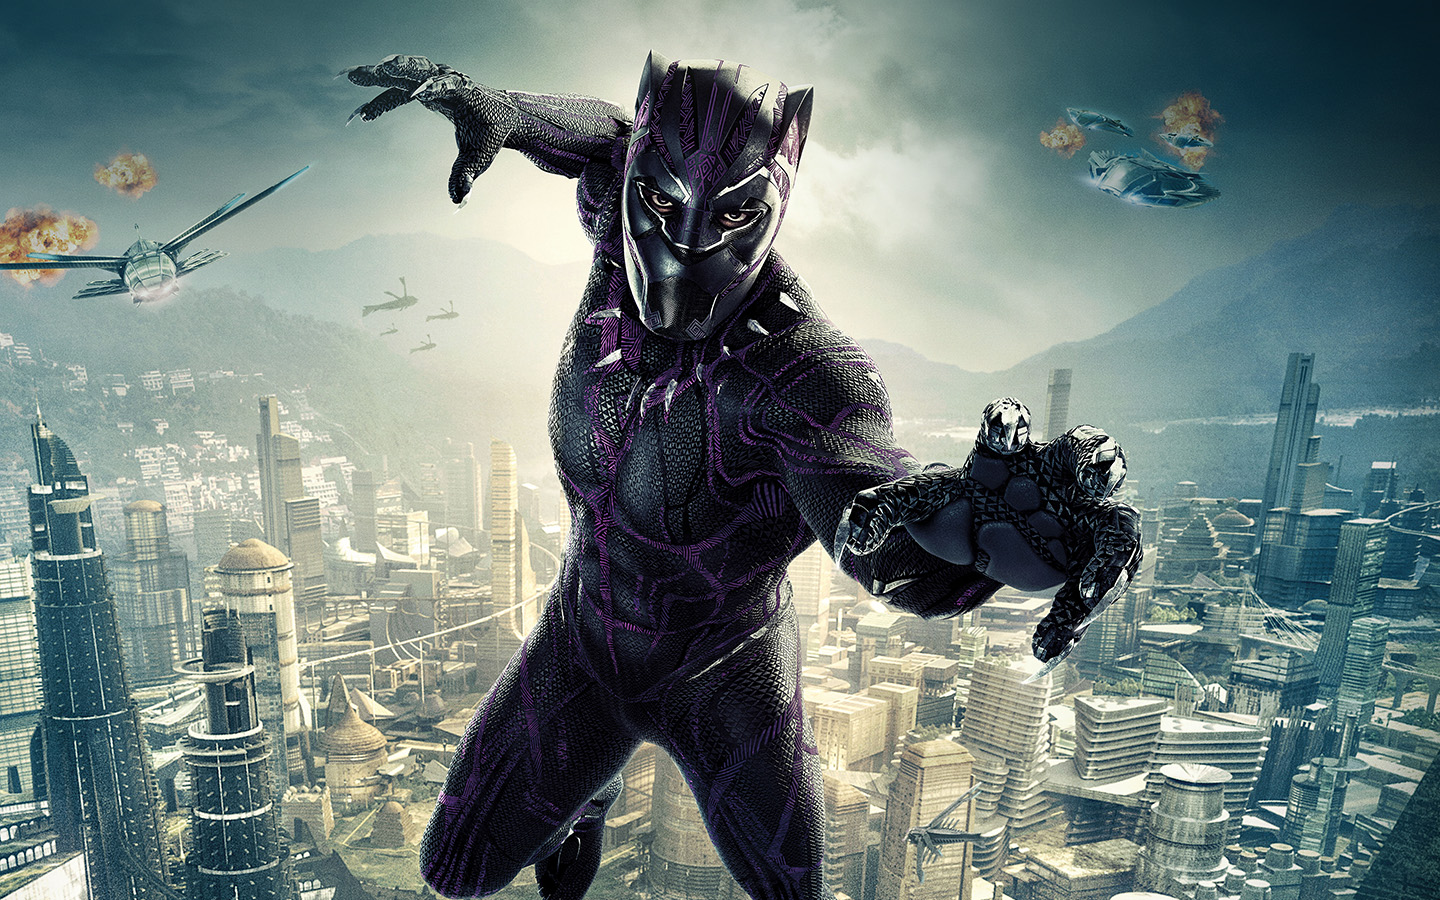 Lg Optimus Wallpaper Hd Be00 Marvel Film Hero Blackpanther Art Illustration Wallpaper